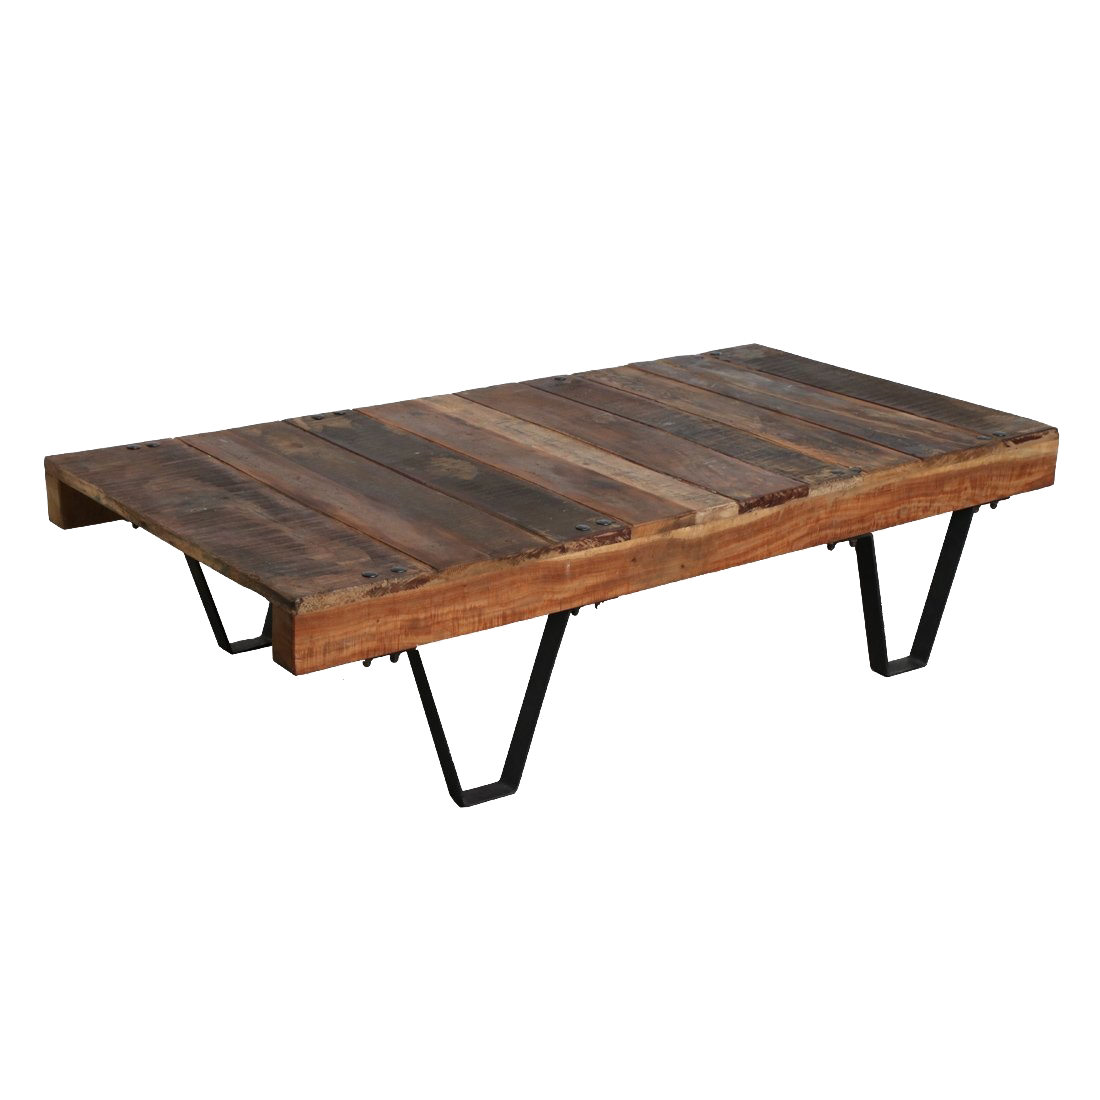 Petite Lily Interiors Industrial coffee table India - metal & wood - 140x70xh35cm